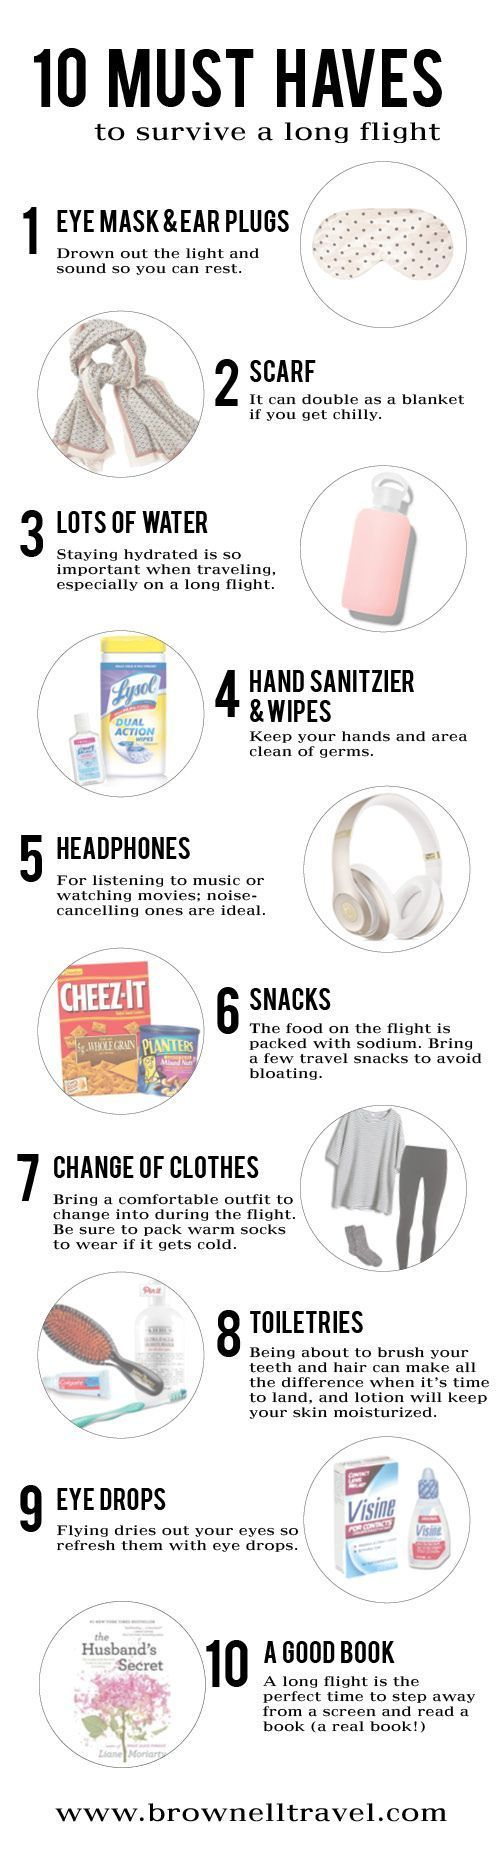 Headed on a long flight? Don't leave without these 10 must haves! http://www.brownelltravel.com/must-haves-for-a-long-flight/